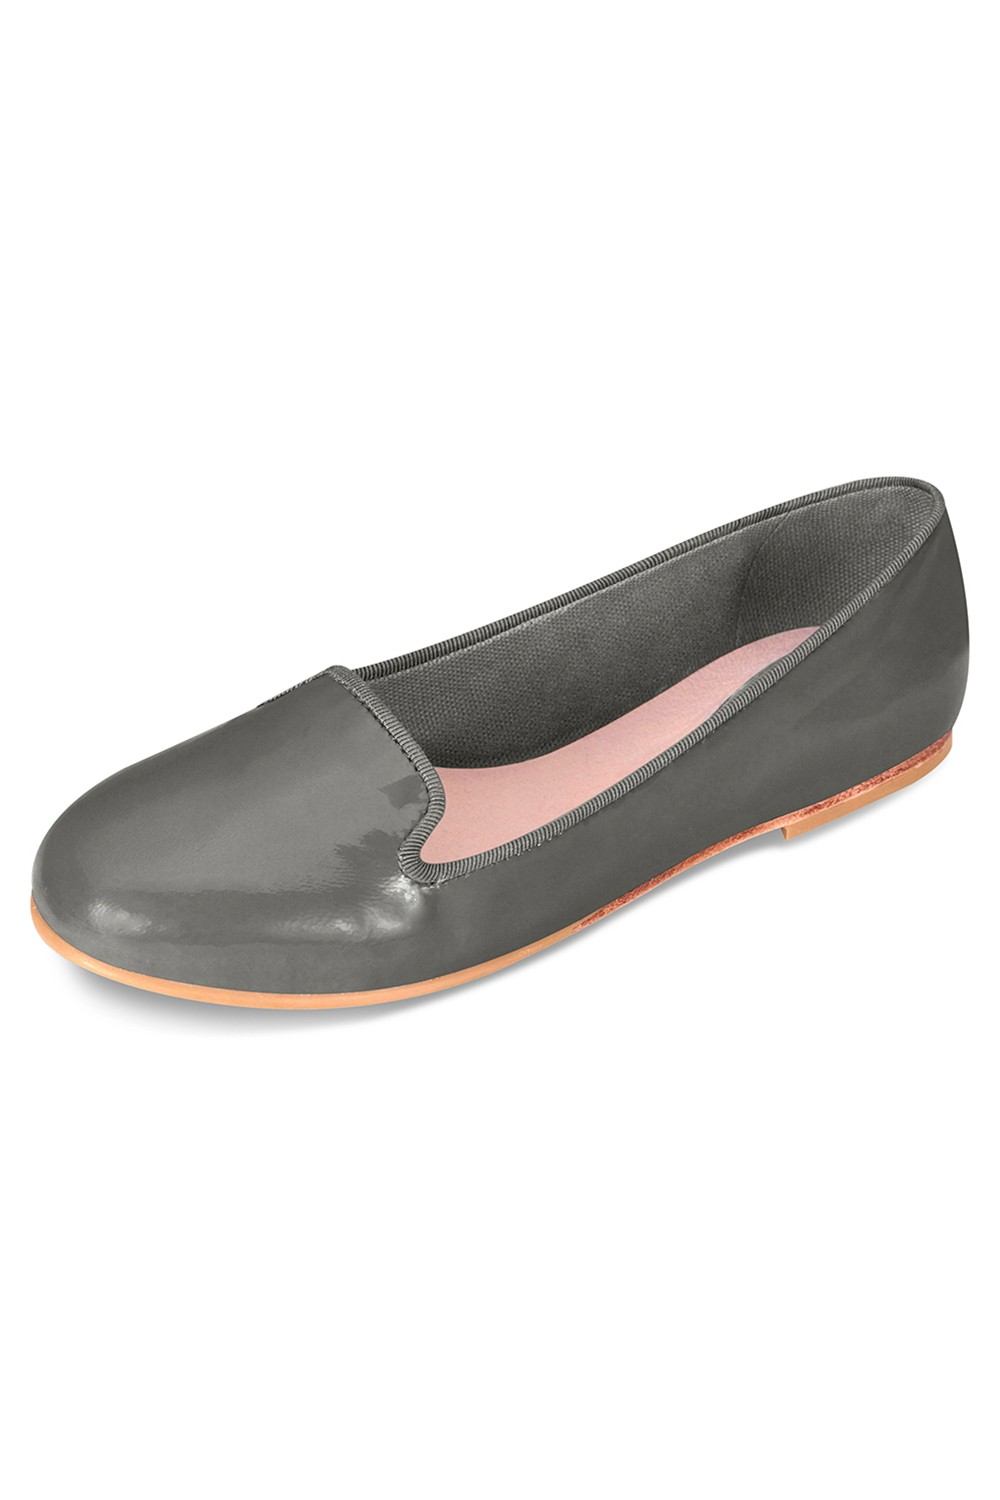 Aubade - Girls Girls Fashion Shoes